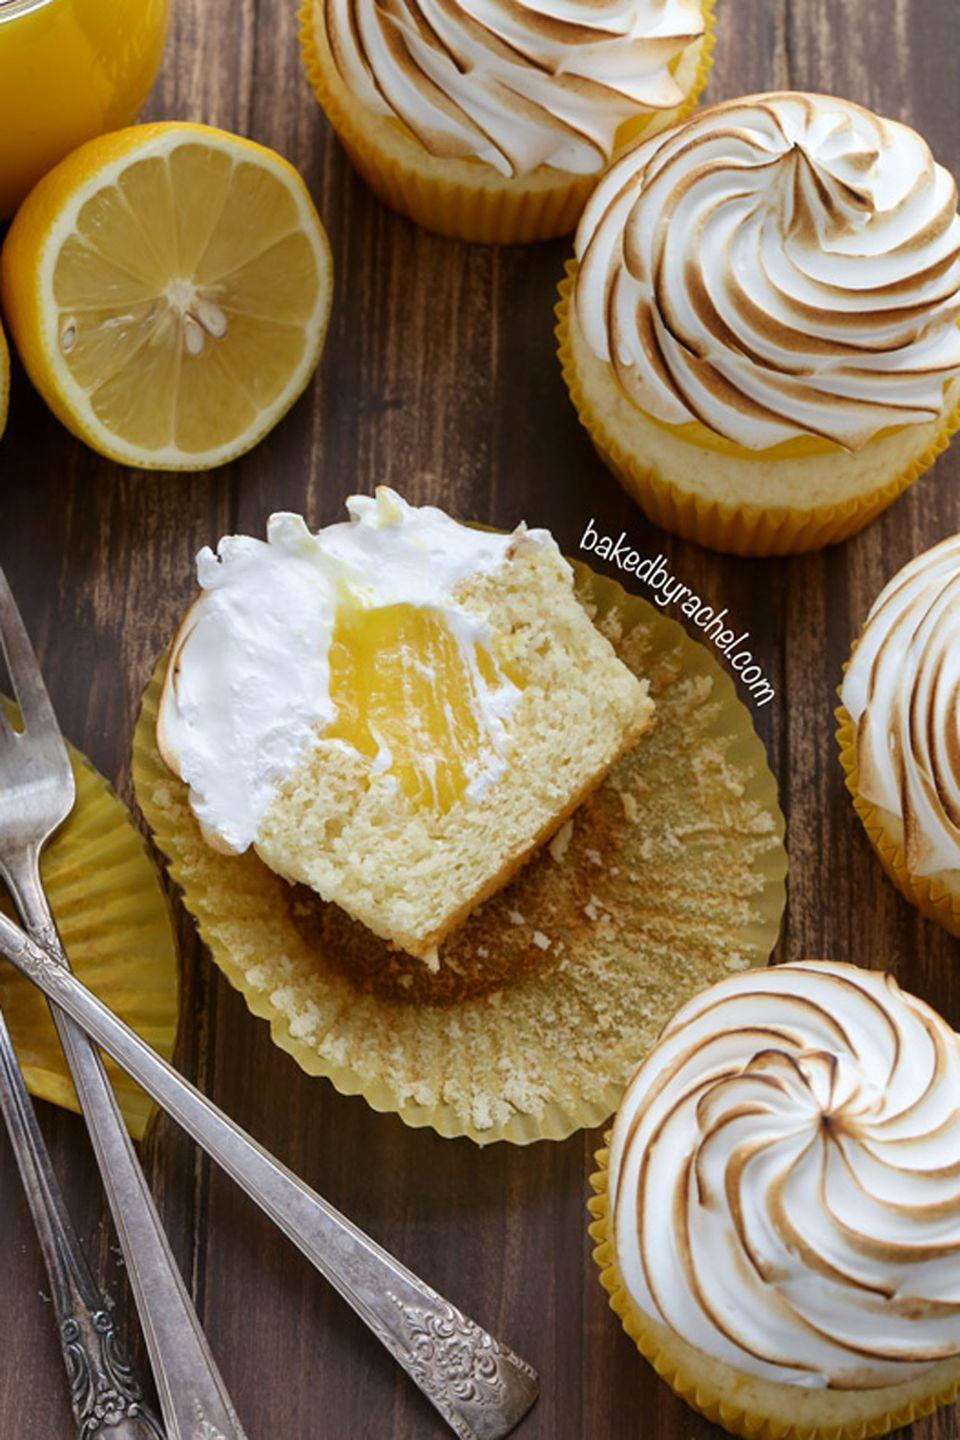 """<p>Here's proof that you can have your pie and eat it too—in cupcake form. </p><p>Get the full recipe from <a href=""""https://www.bakedbyrachel.com/lemon-meringue-cupcakes/"""" rel=""""nofollow noopener"""" target=""""_blank"""" data-ylk=""""slk:Baked By Rachel"""" class=""""link rapid-noclick-resp"""">Baked By Rachel</a>.</p><p><strong>What you'll need: </strong>Kitchen torch ($35, <a href=""""https://www.amazon.com/gp/product/B000G9OYX4/ref=as_li_tl?tag=syn-yahoo-20&ascsubtag=%5Bartid%7C10057.g.18197145%5Bsrc%7Cyahoo-us"""" rel=""""nofollow noopener"""" target=""""_blank"""" data-ylk=""""slk:amazon.com"""" class=""""link rapid-noclick-resp"""">amazon.com</a>)</p>"""